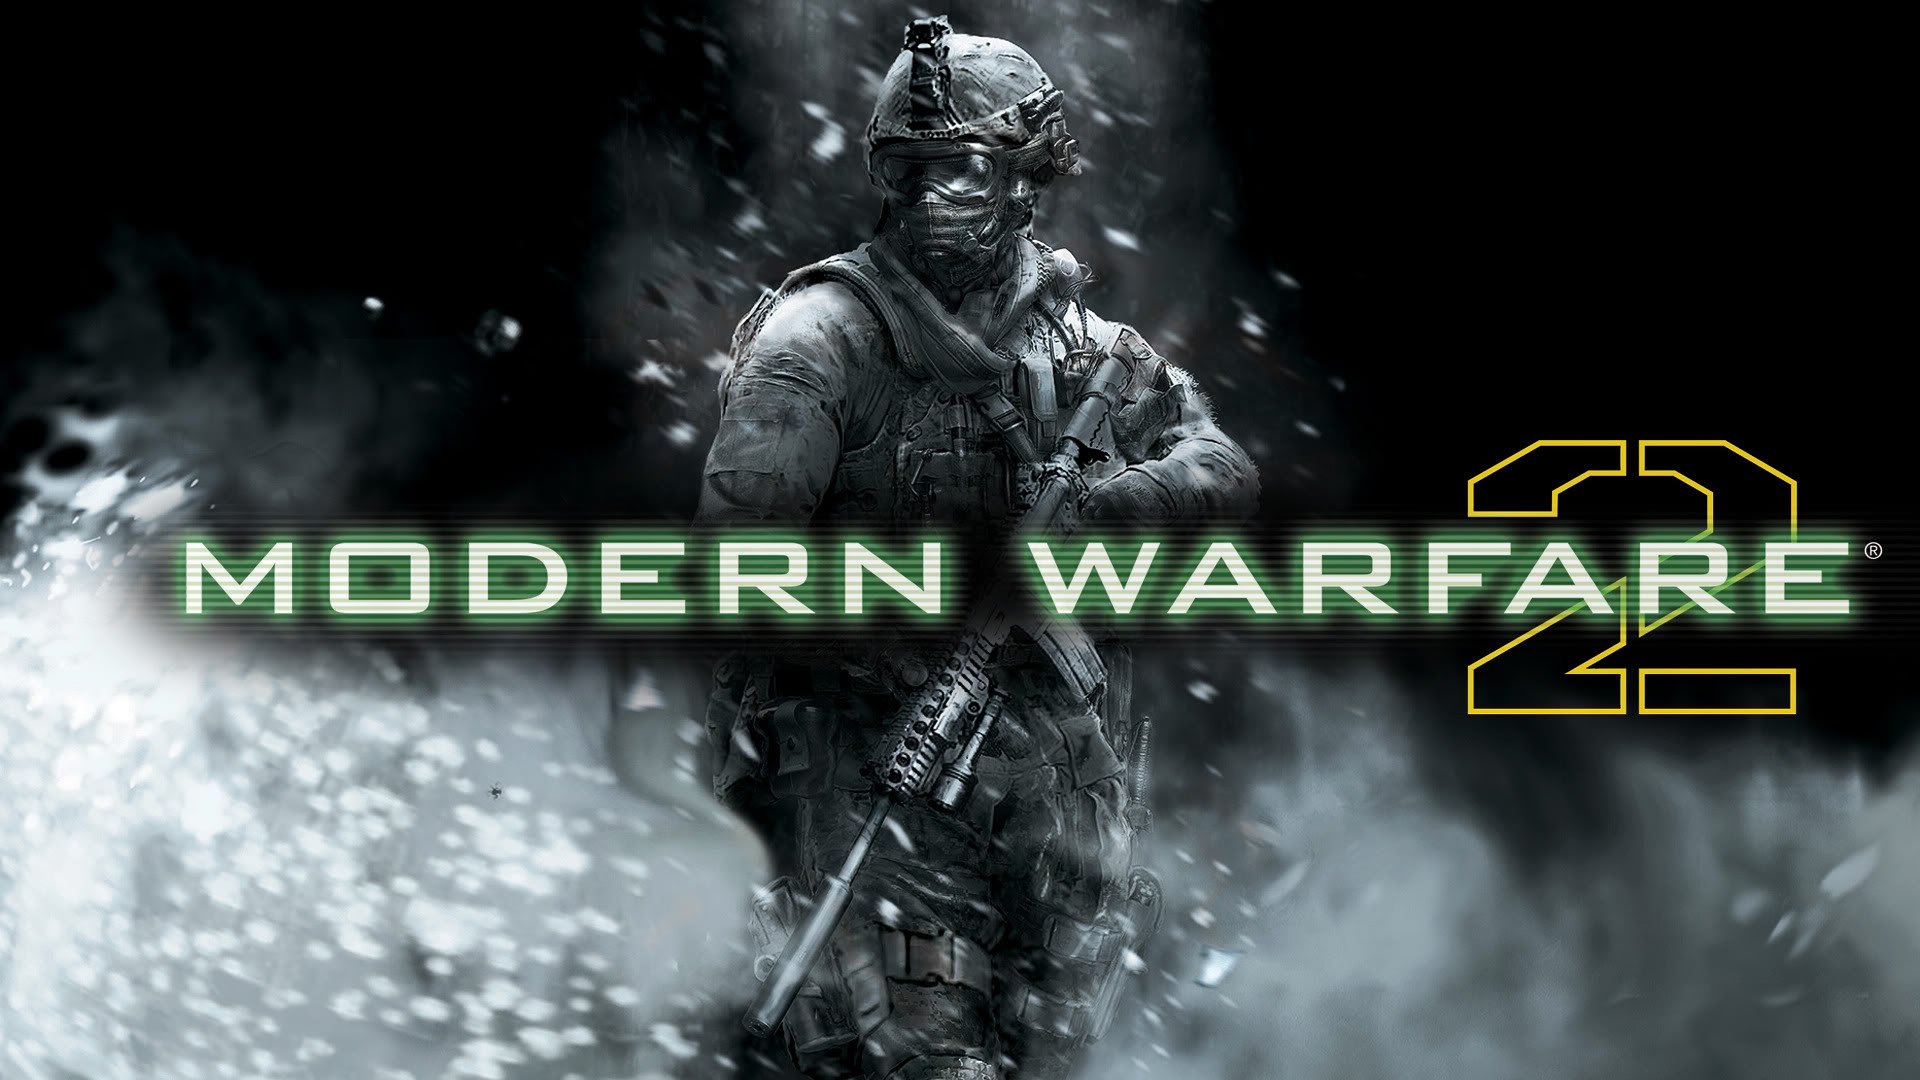 Call of Duty Modern Warfare 2 Compressed PC Game Free Download 3.8GB